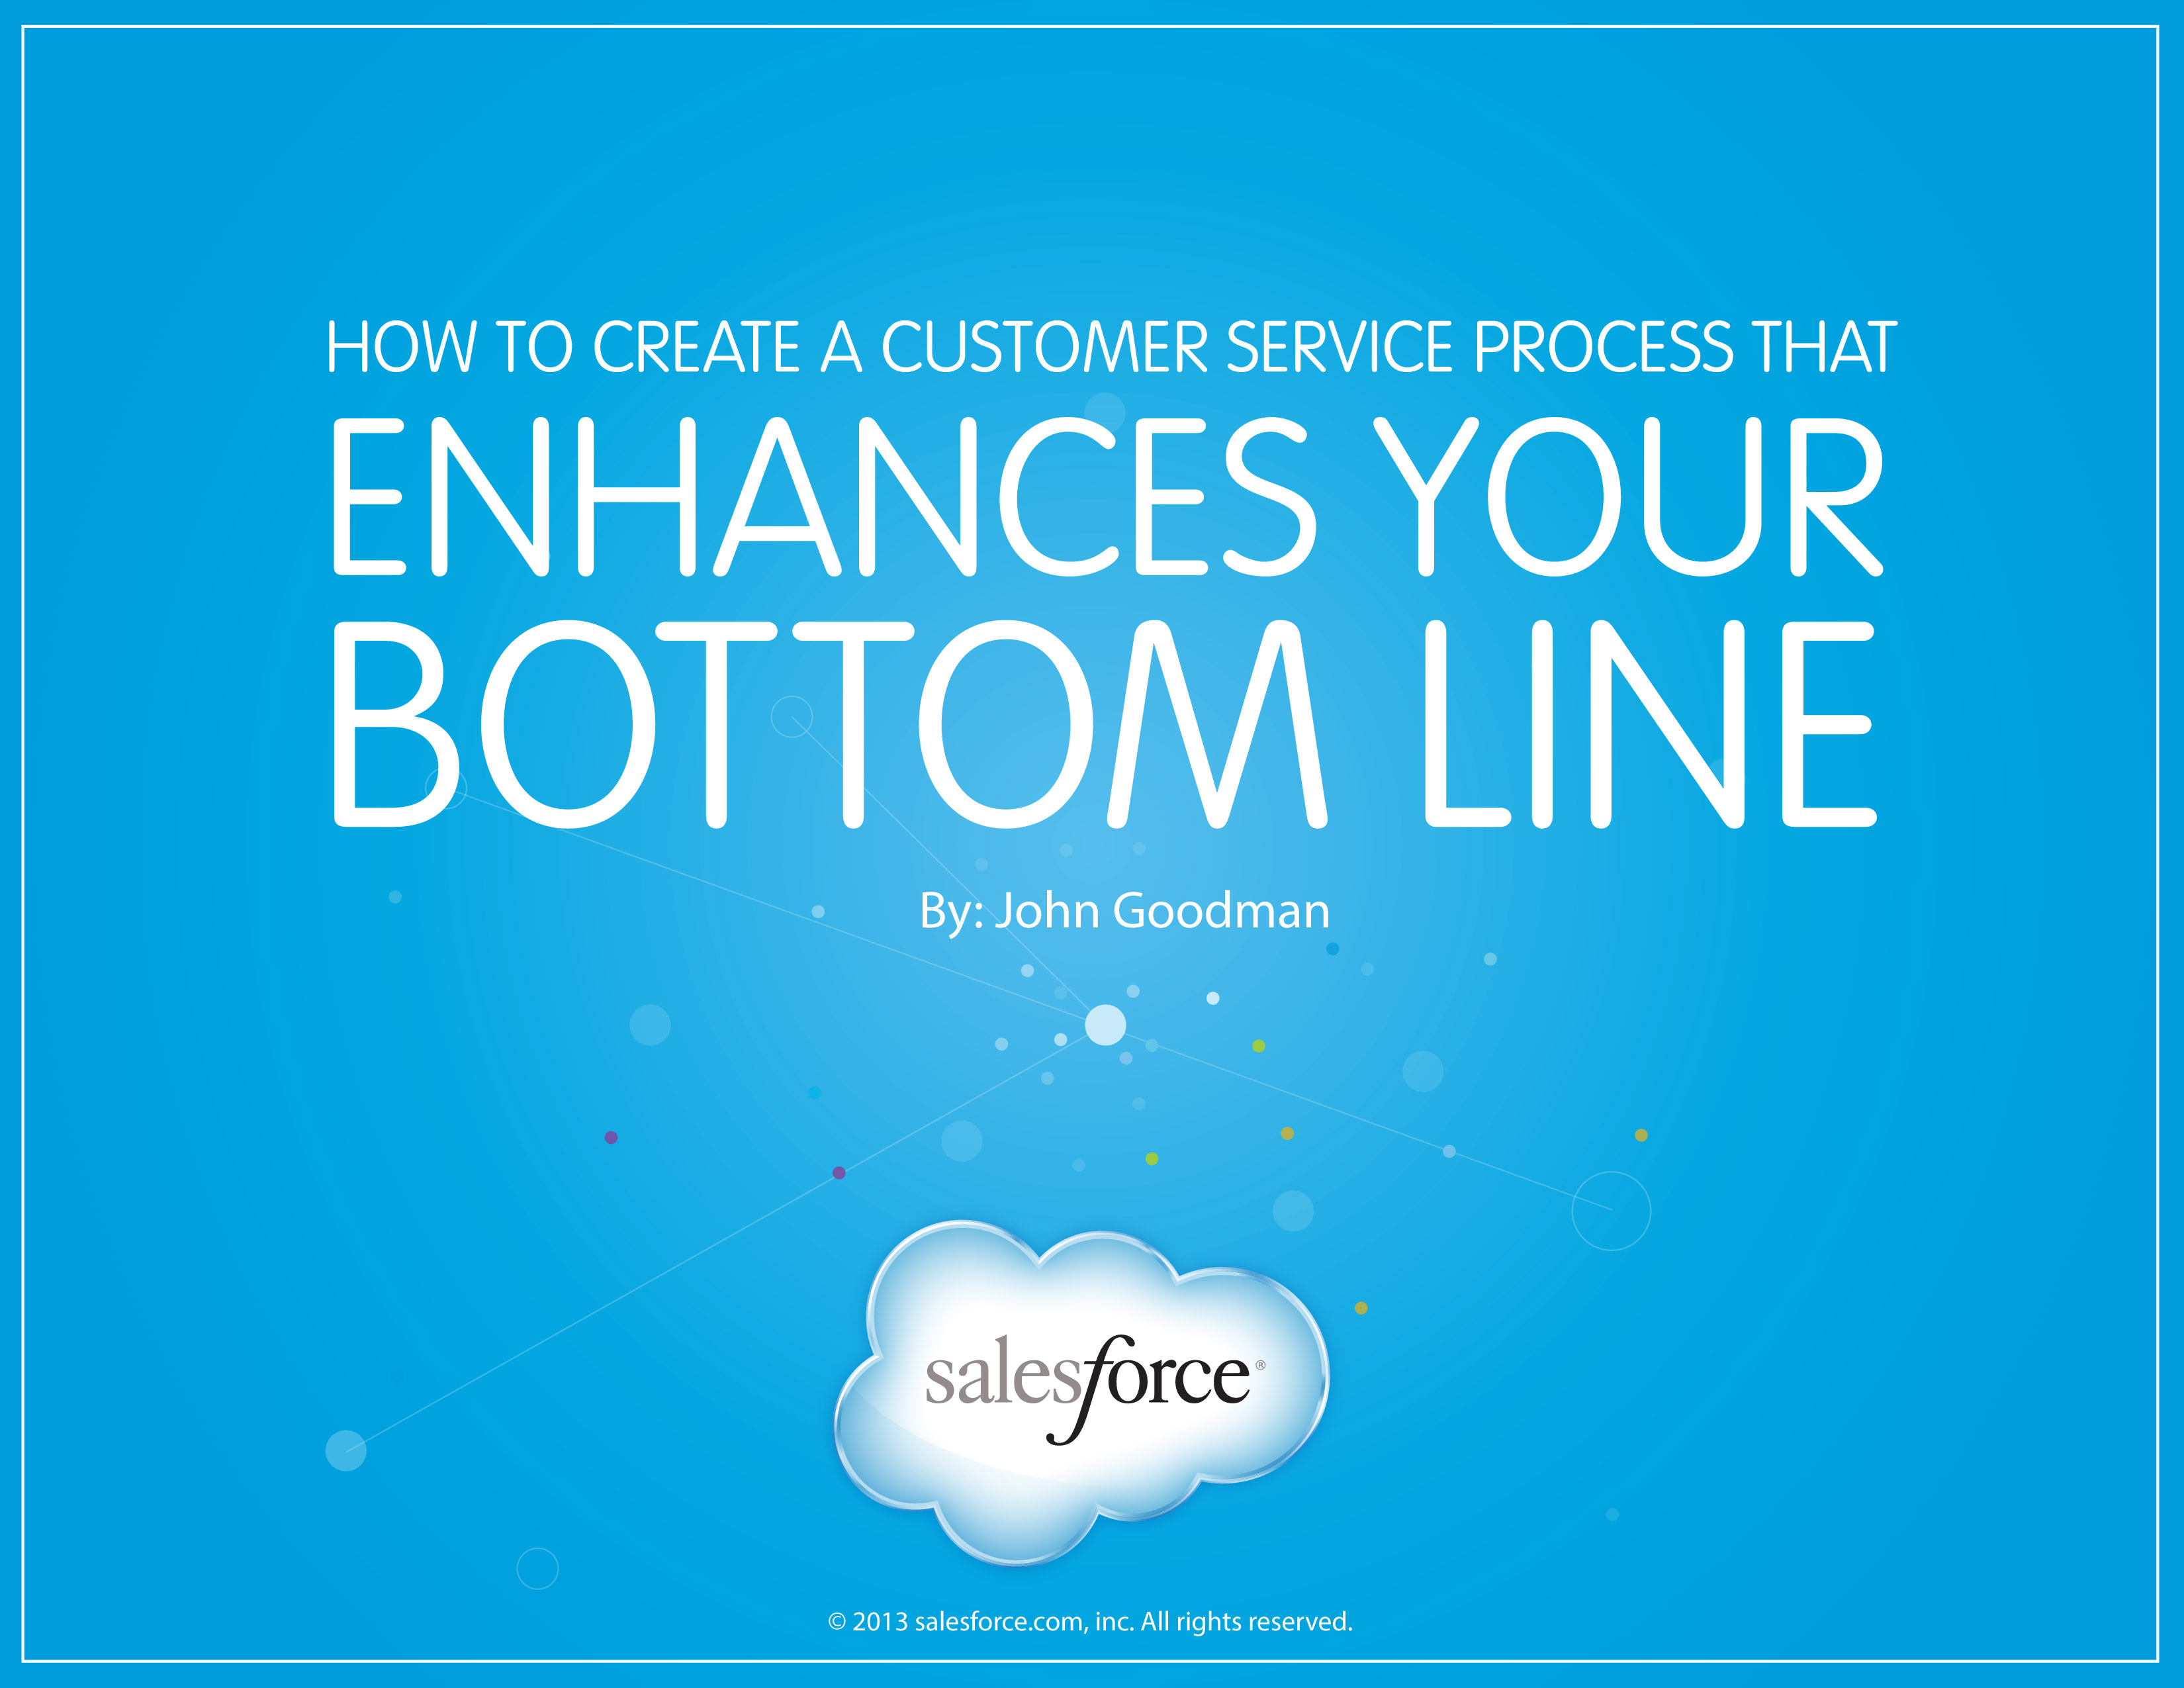 Salesforce Customer Service | eBook Sample